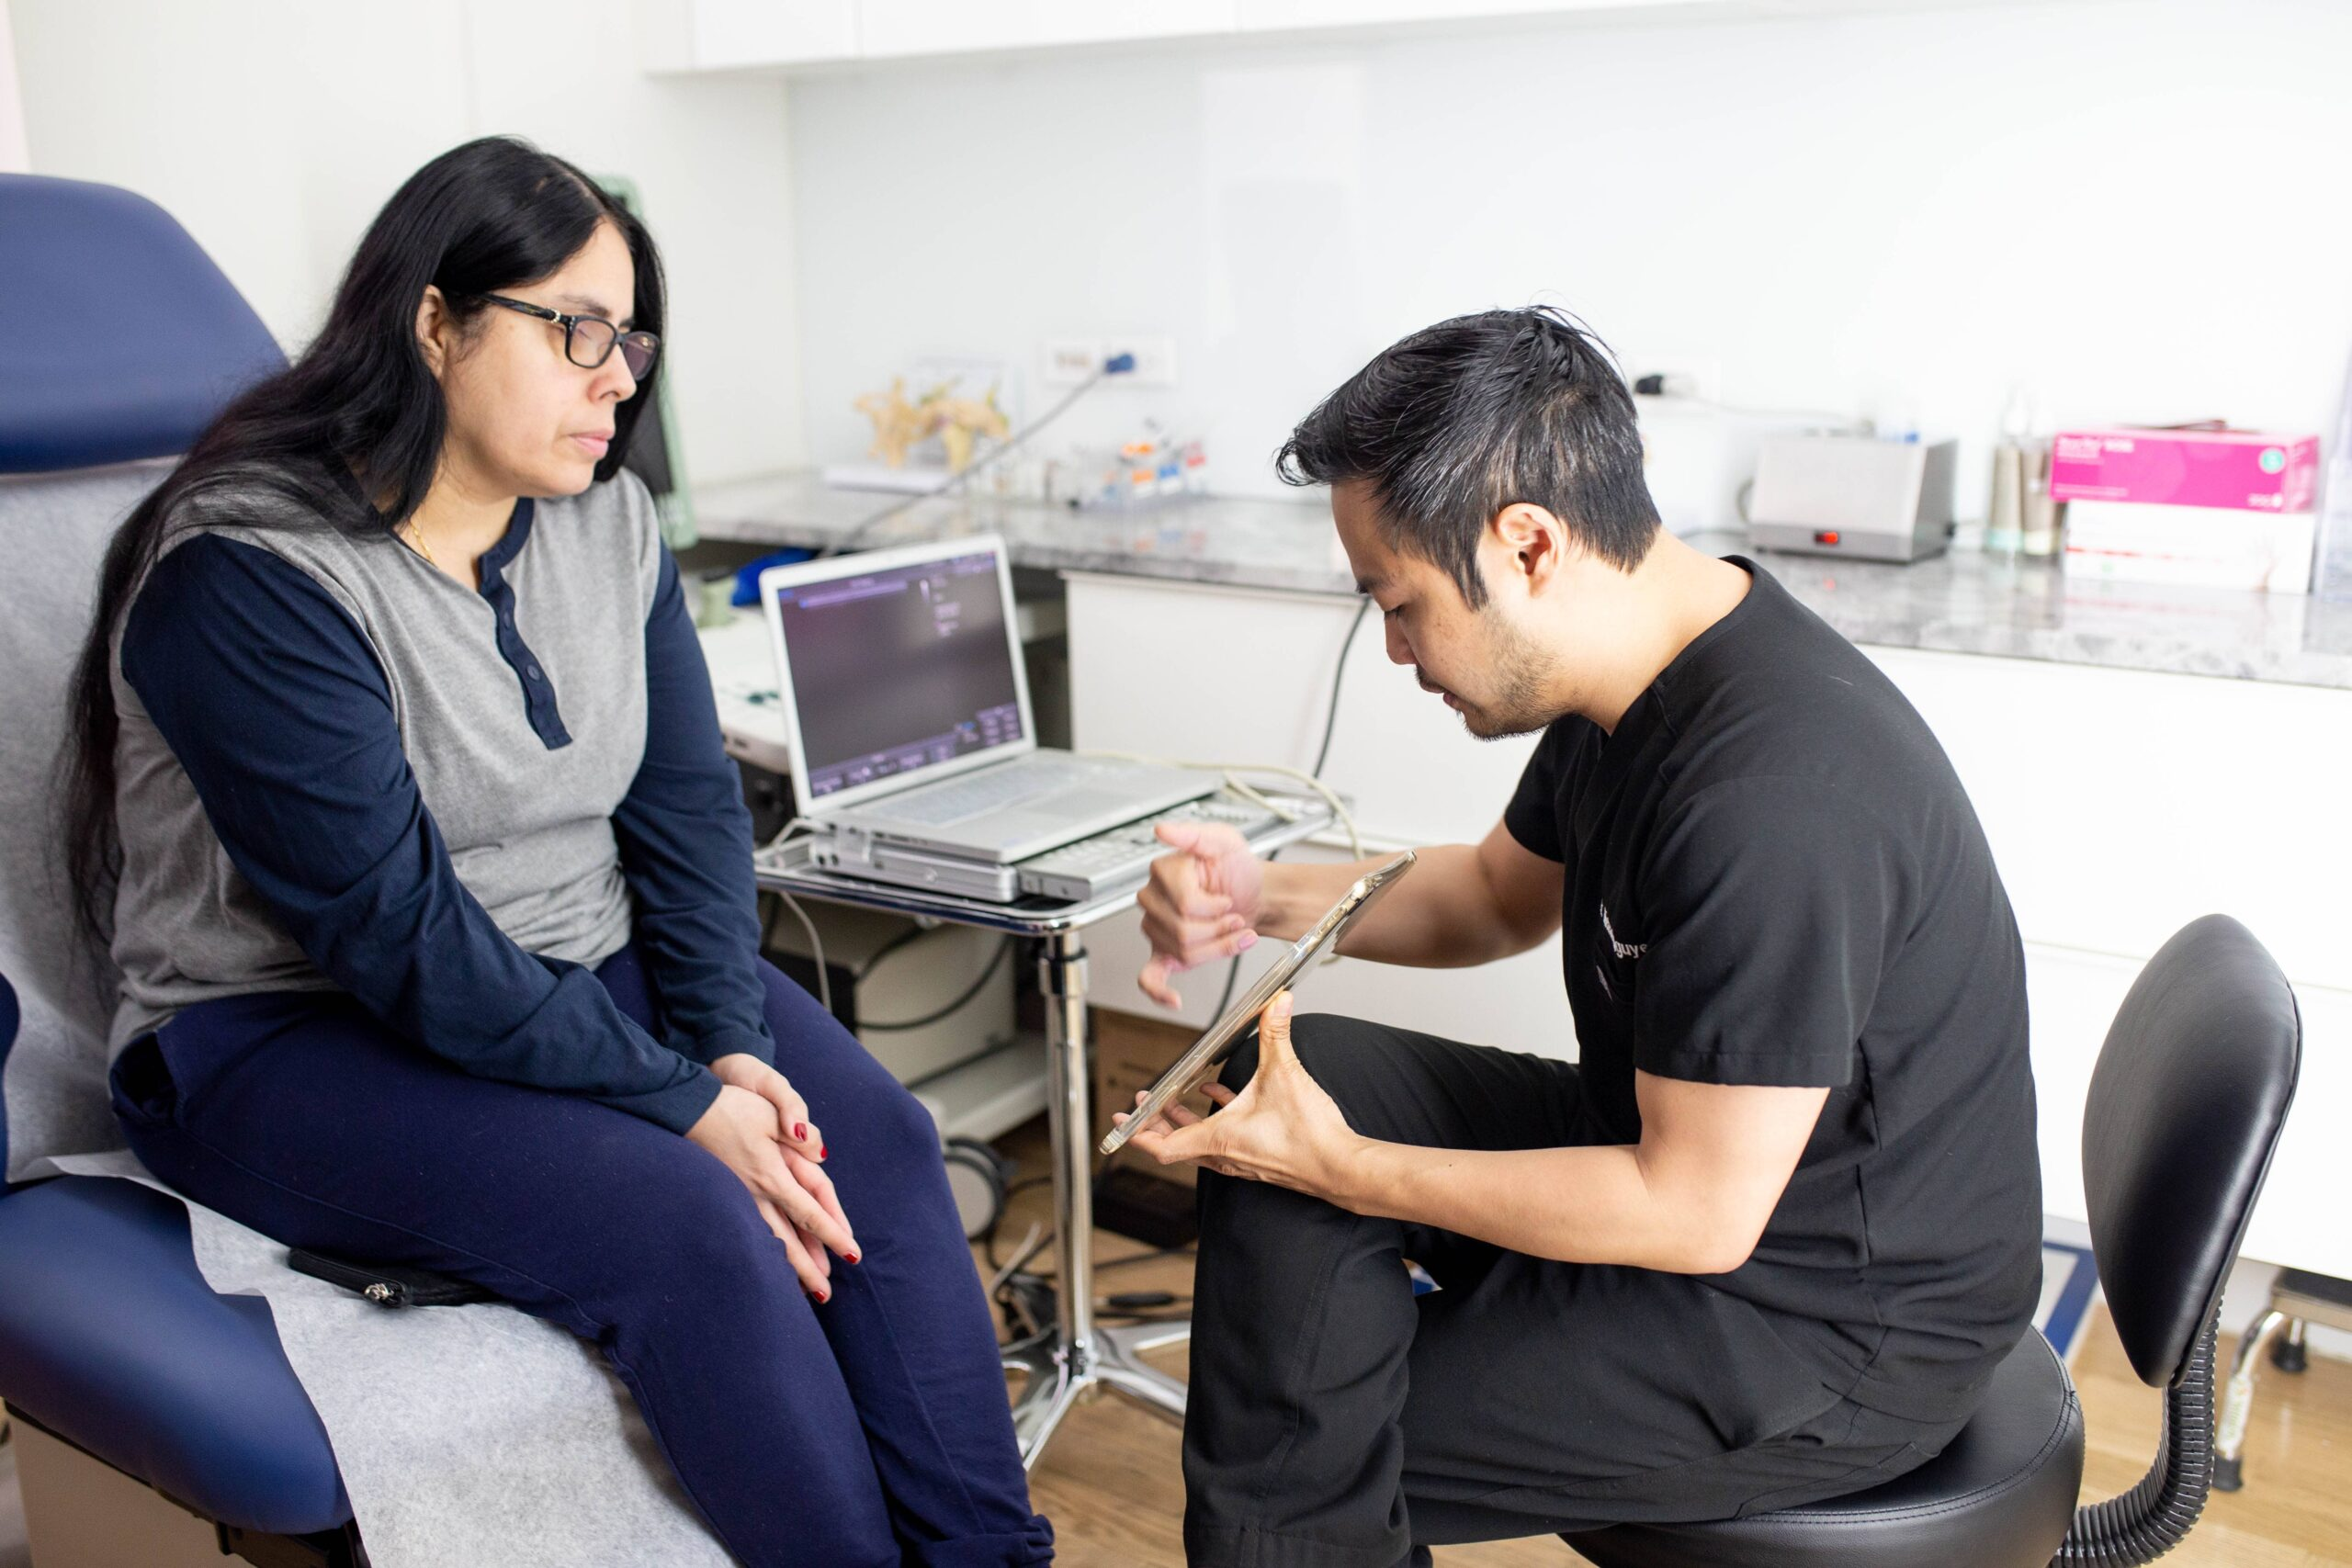 What are 8 questions I should ask when choosing a vein center for vein treatment? A reputable vein clinic Manhattan lists qualities to look for when you are searching for the best vein center to provide you with vein treatment.